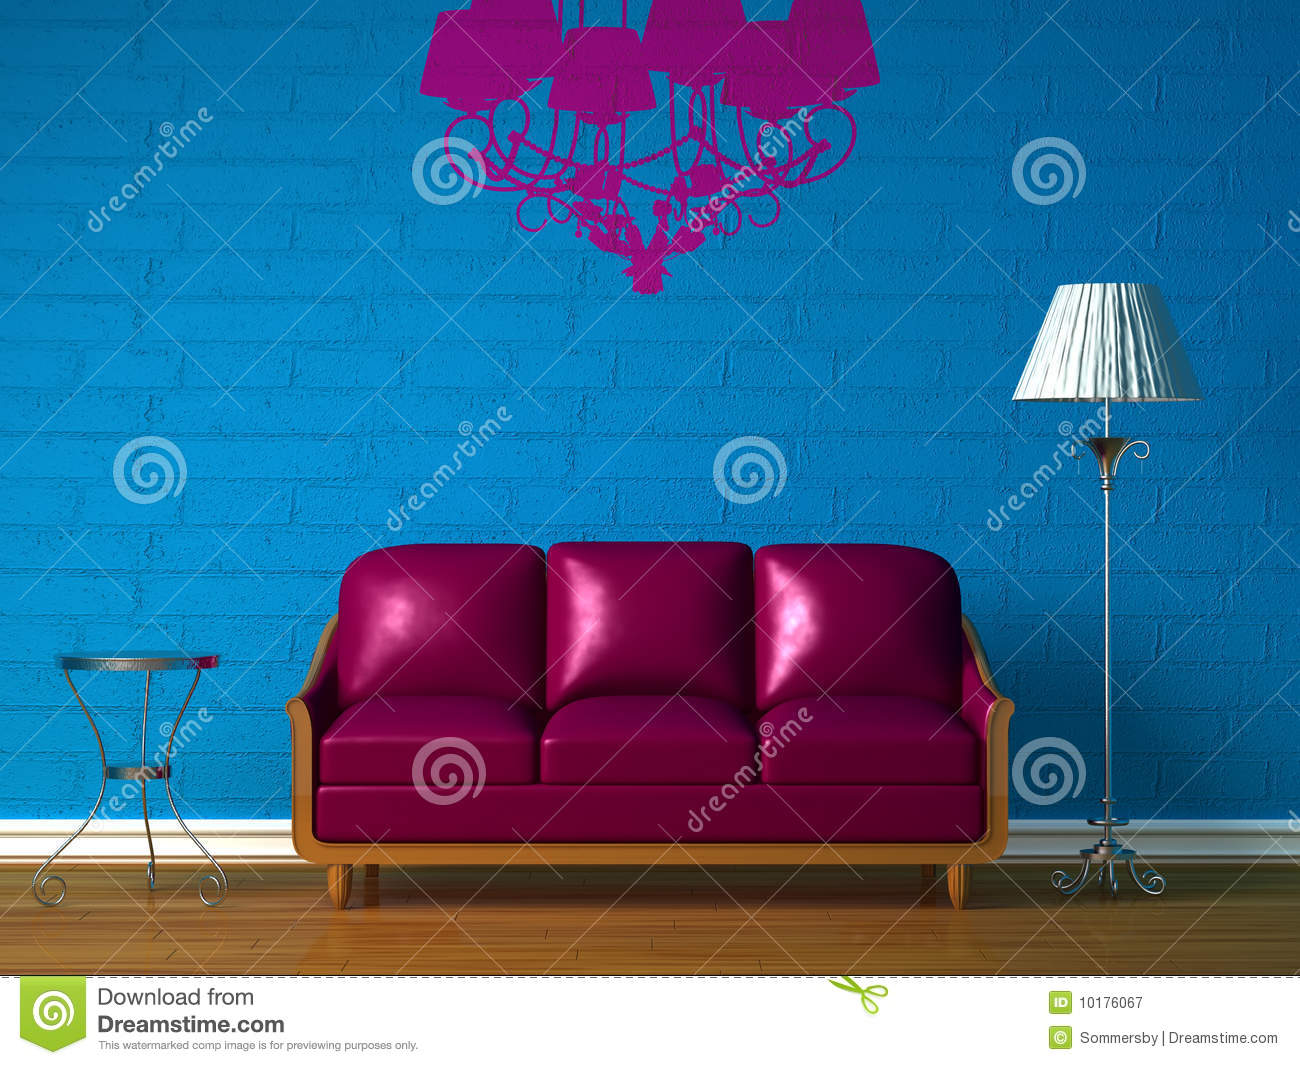 Purple couch, table and standard lamp